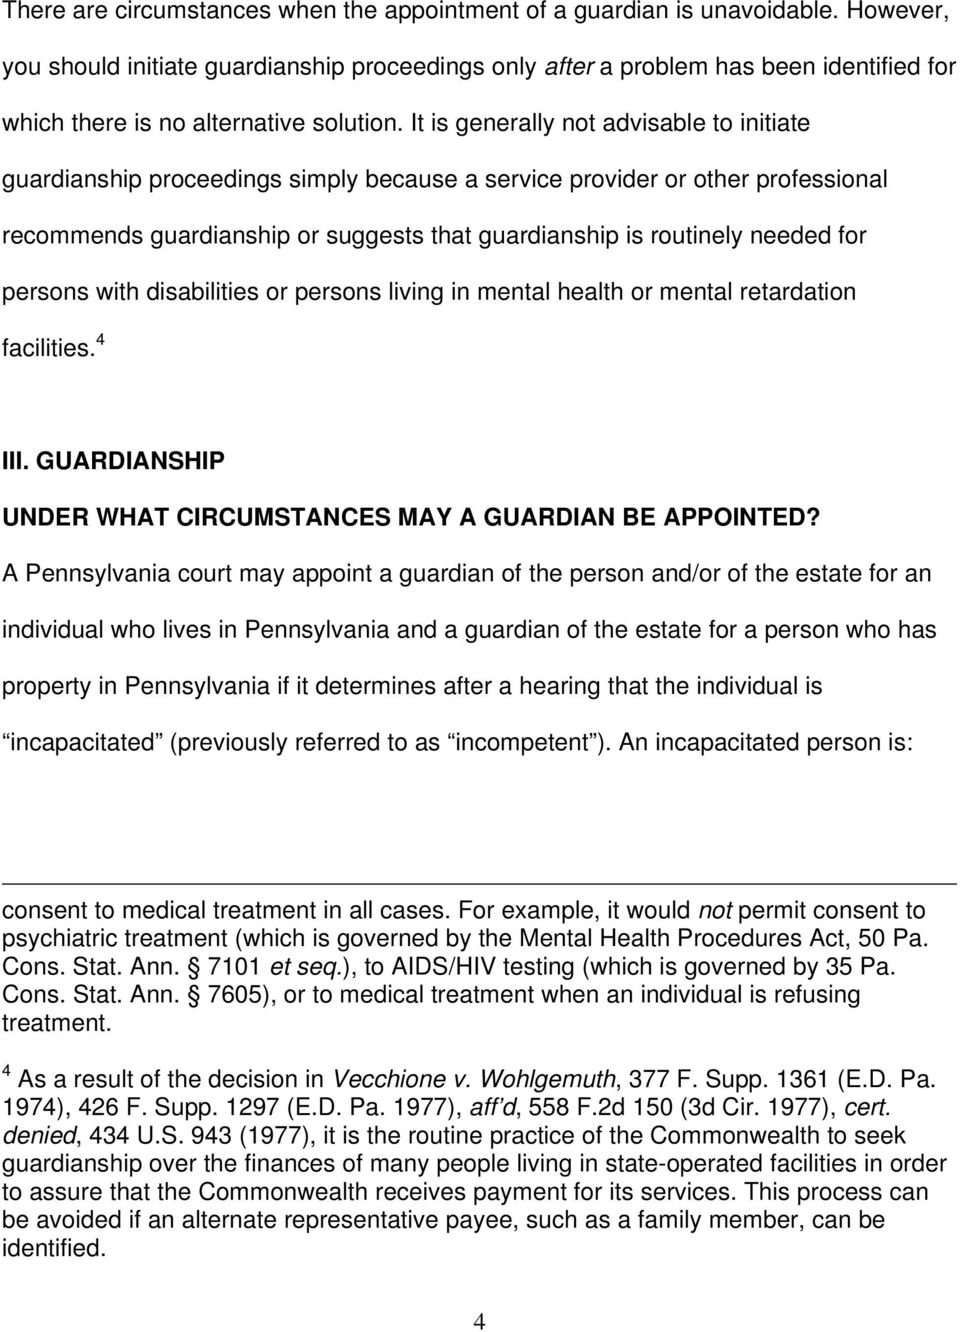 It is generally not advisable to initiate guardianship proceedings simply because a service provider or other professional recommends guardianship or suggests that guardianship is routinely needed